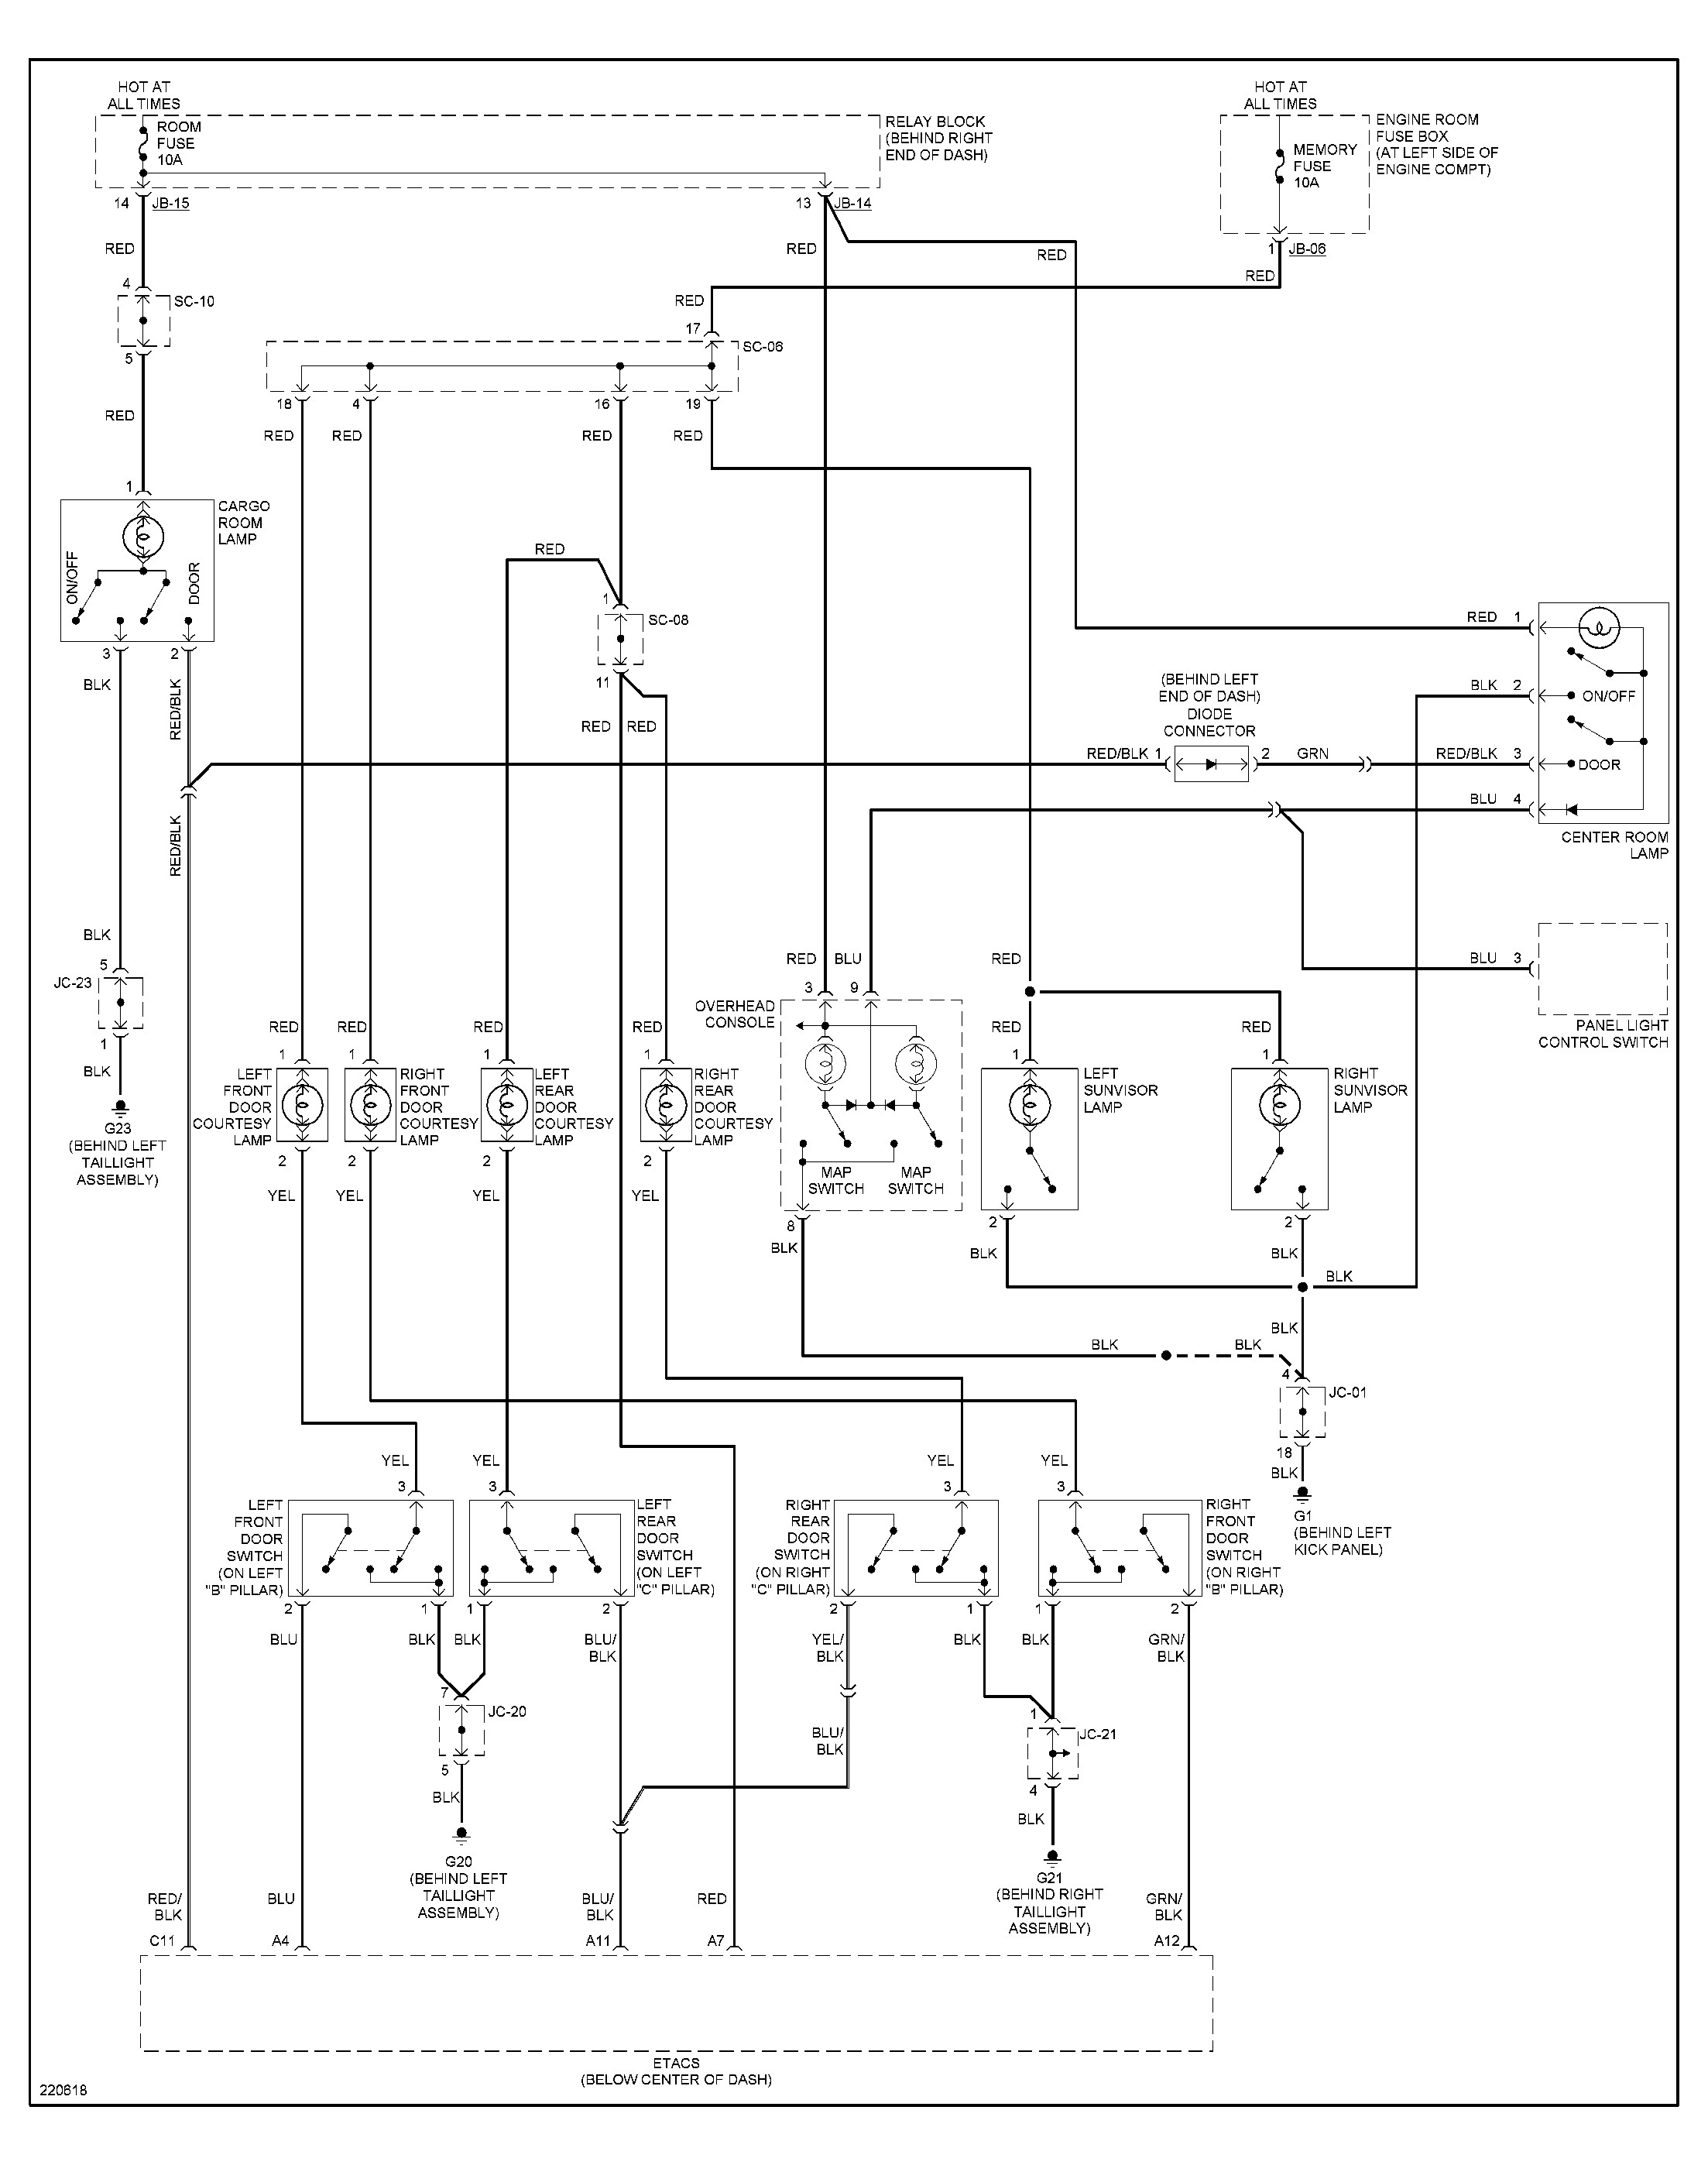 wiring diagram for 2004 kia spectra 2004 kia spectra radio wiring diagram | free wiring diagram #7